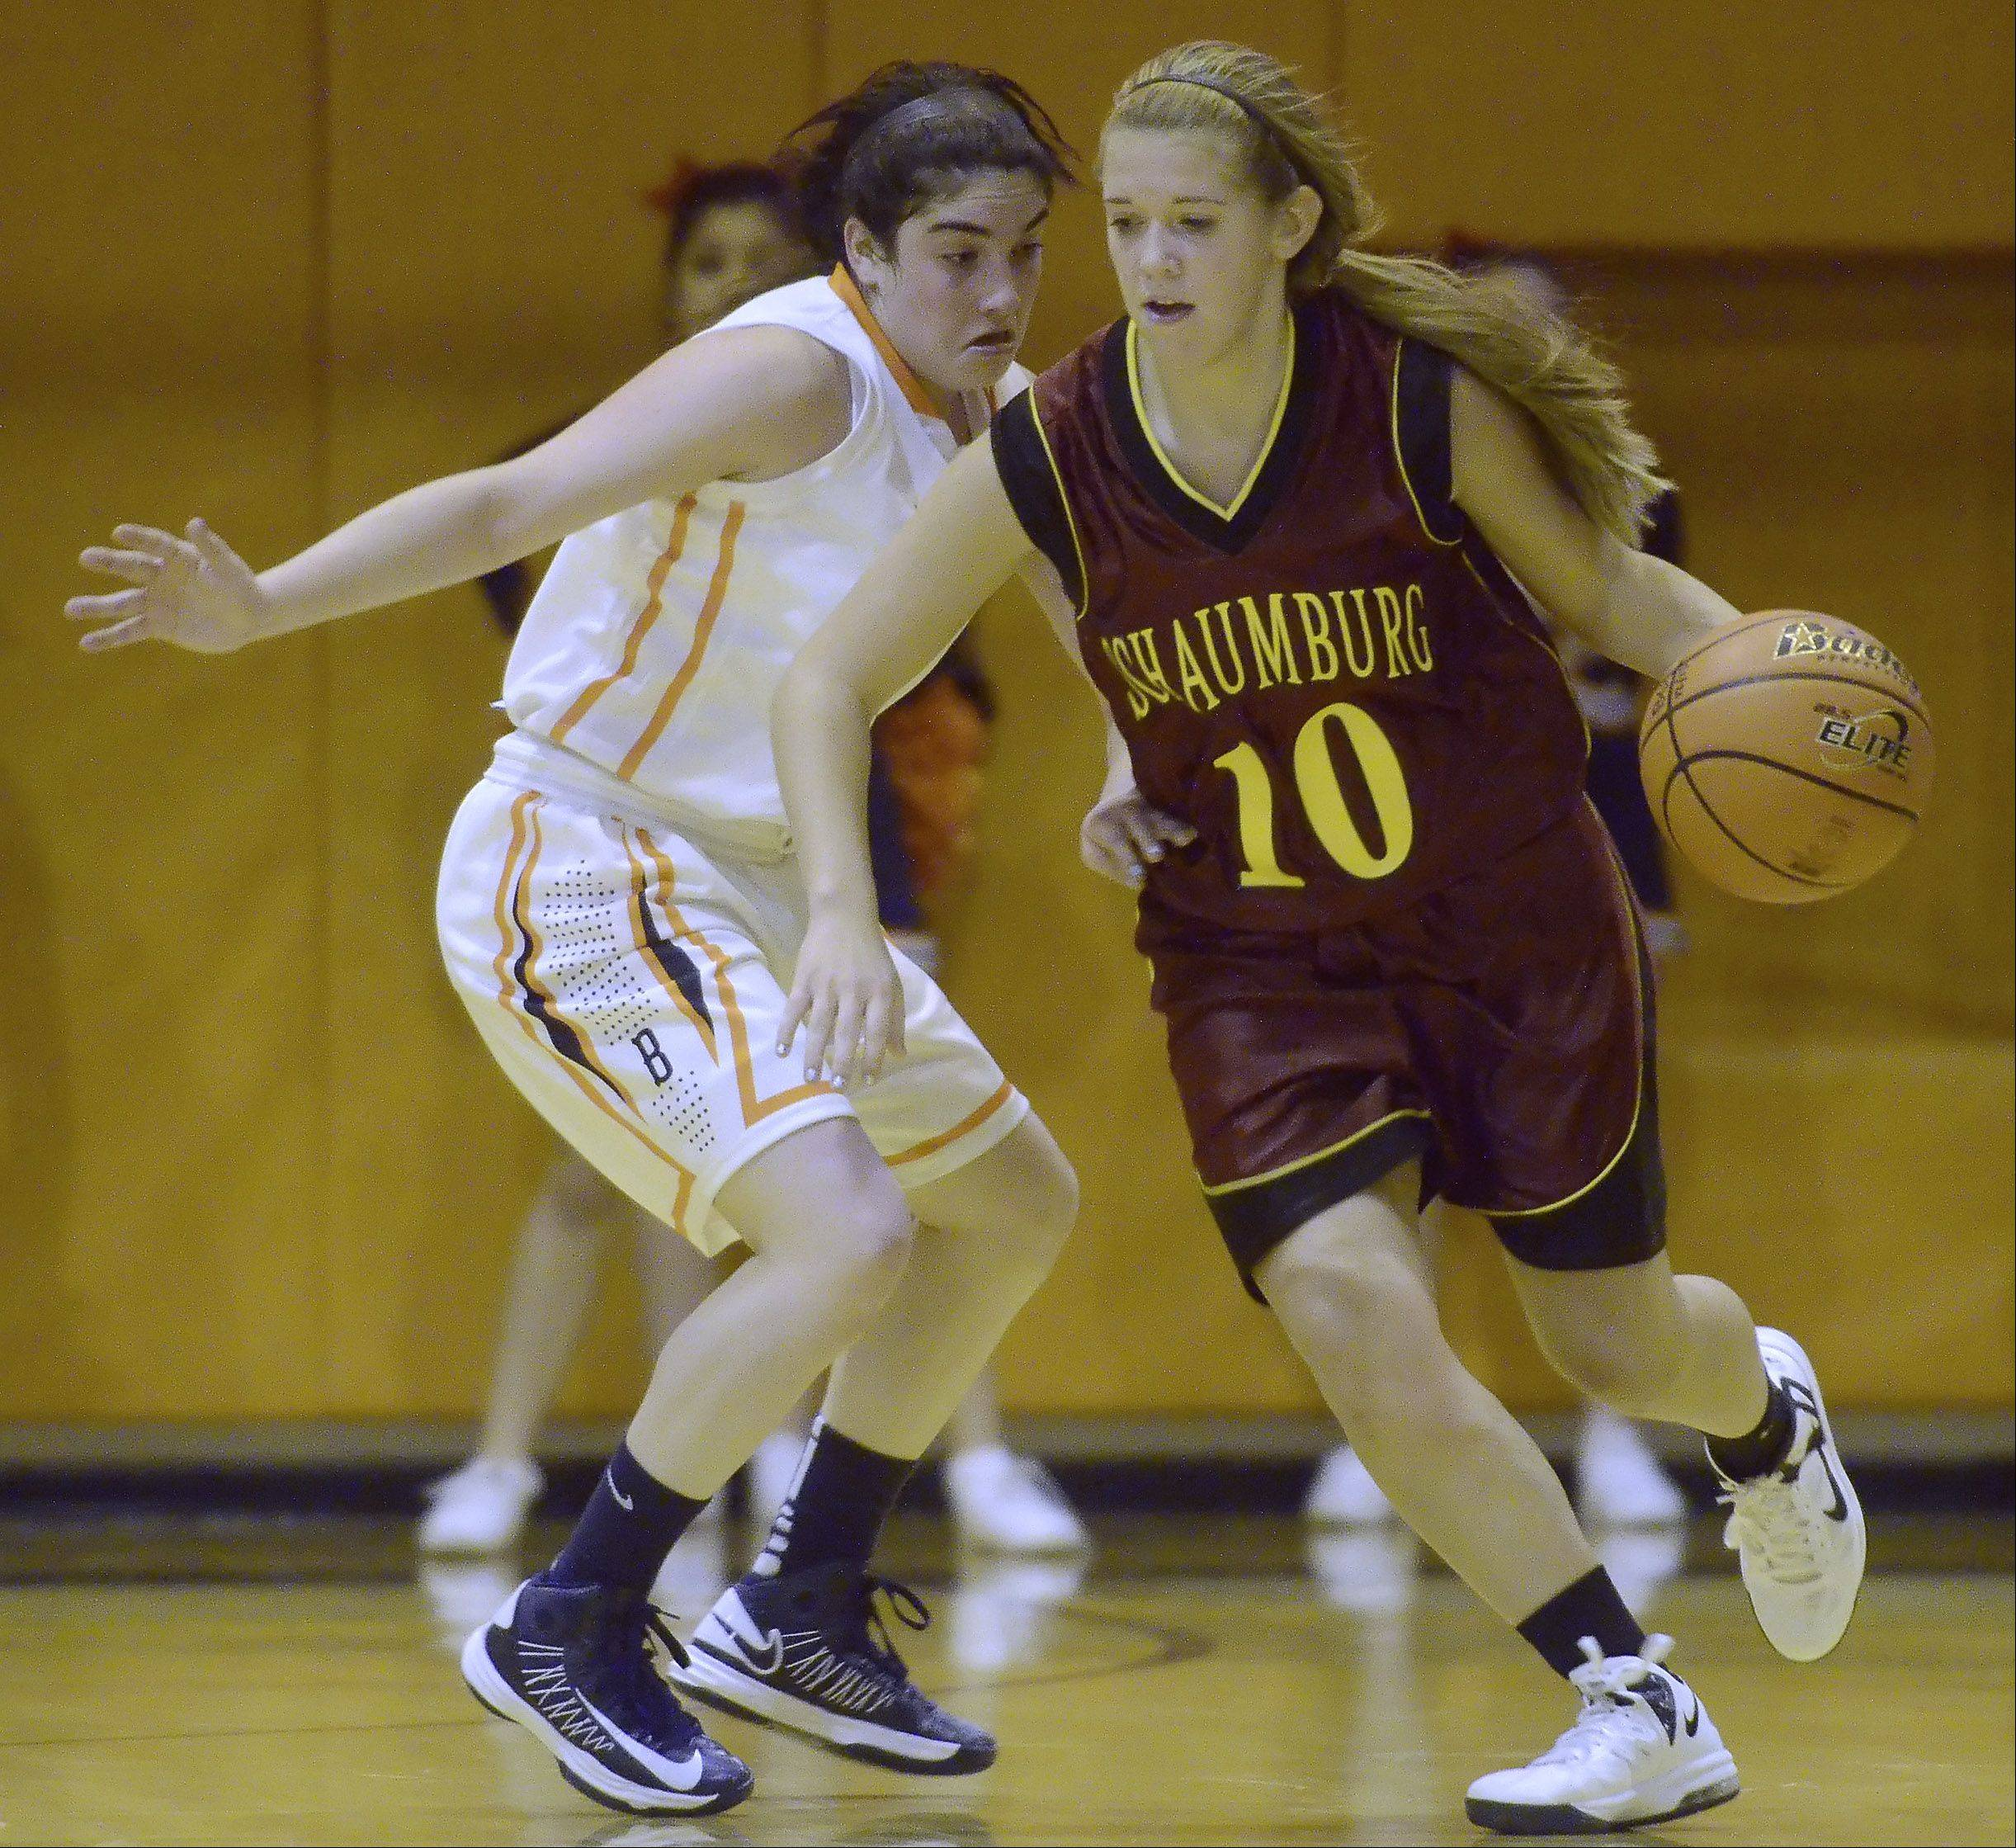 Schaumburg's Riley Williams drives around Buffalo Grove's Julie Jambrone.